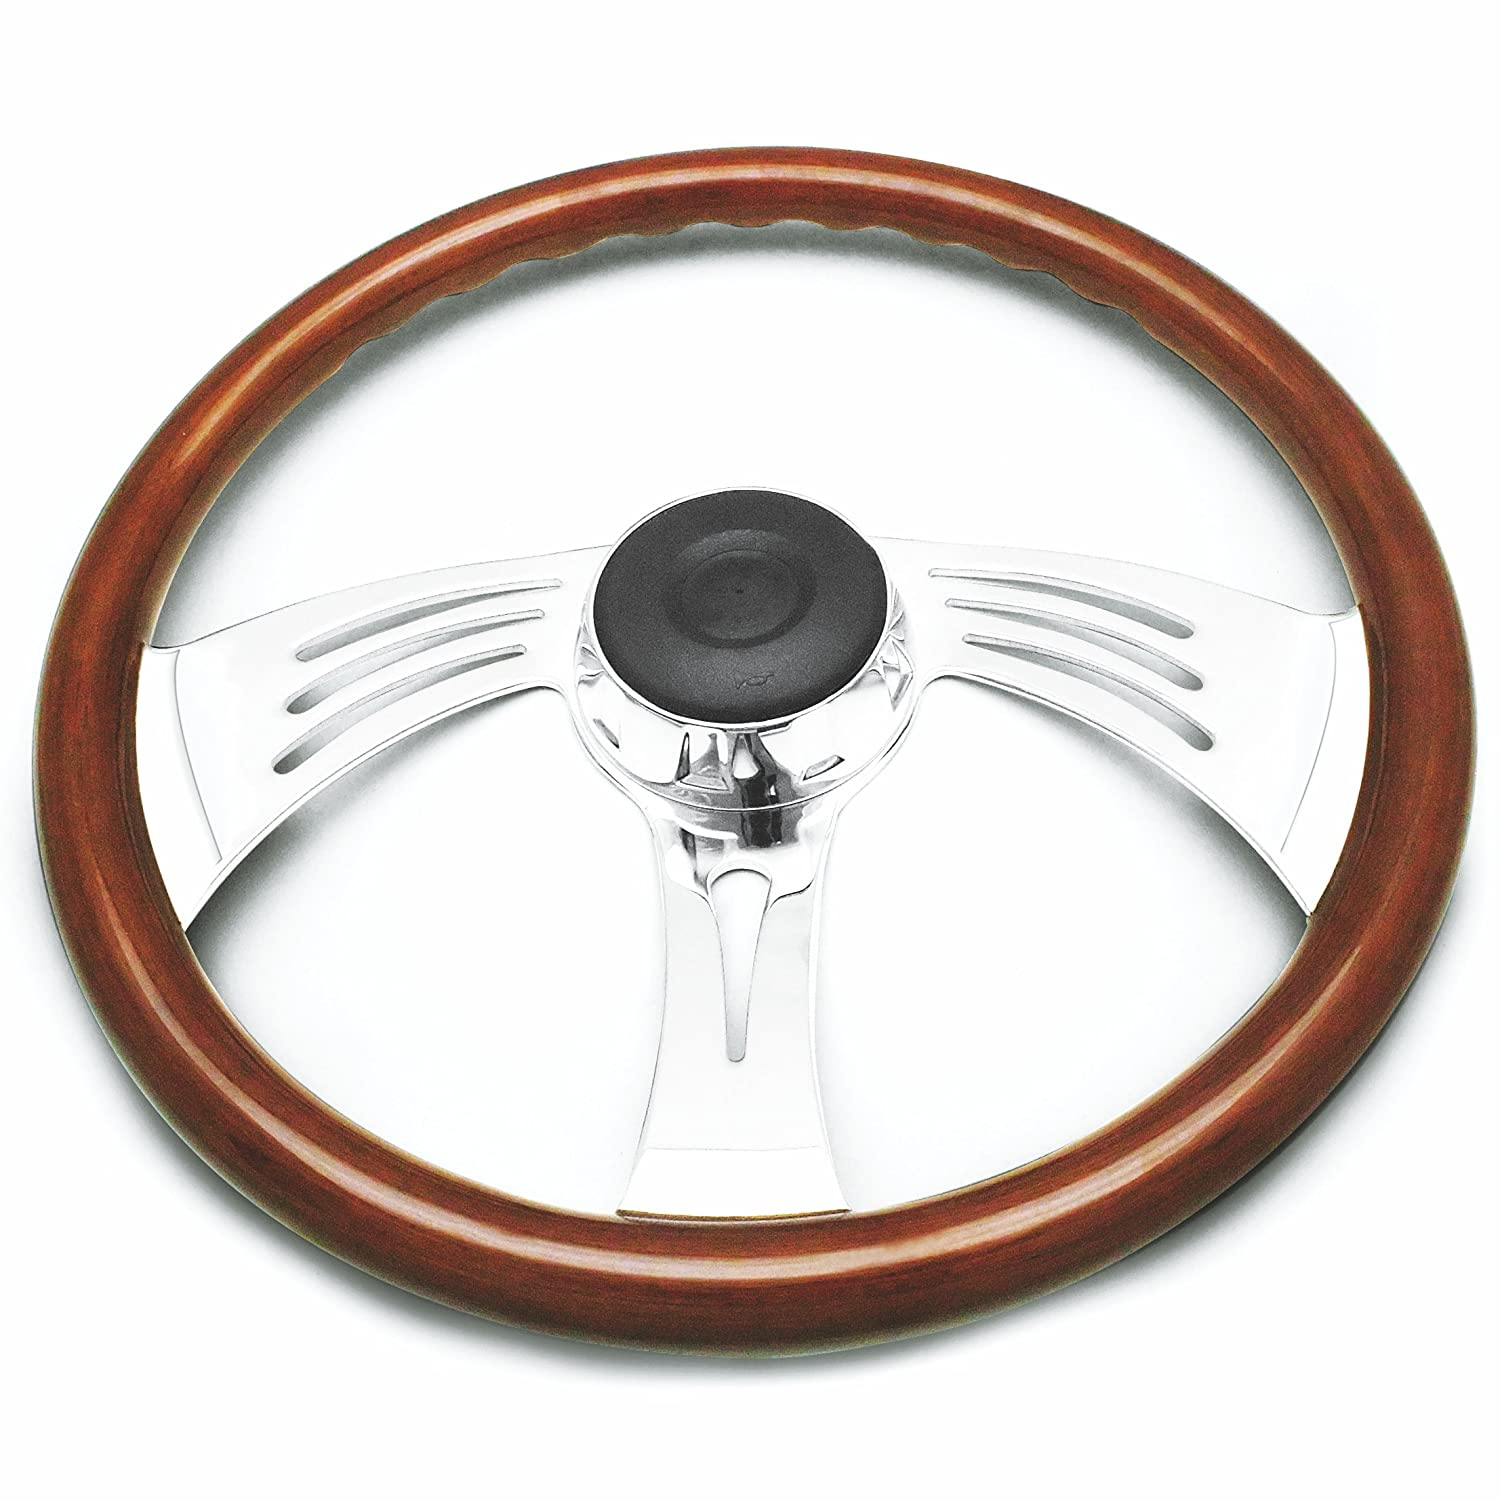 Woody's WP-SWPB9801.3W Rosewood Chrome Truck Steering Wheel (Beautiful African Hardwood) Woody' s